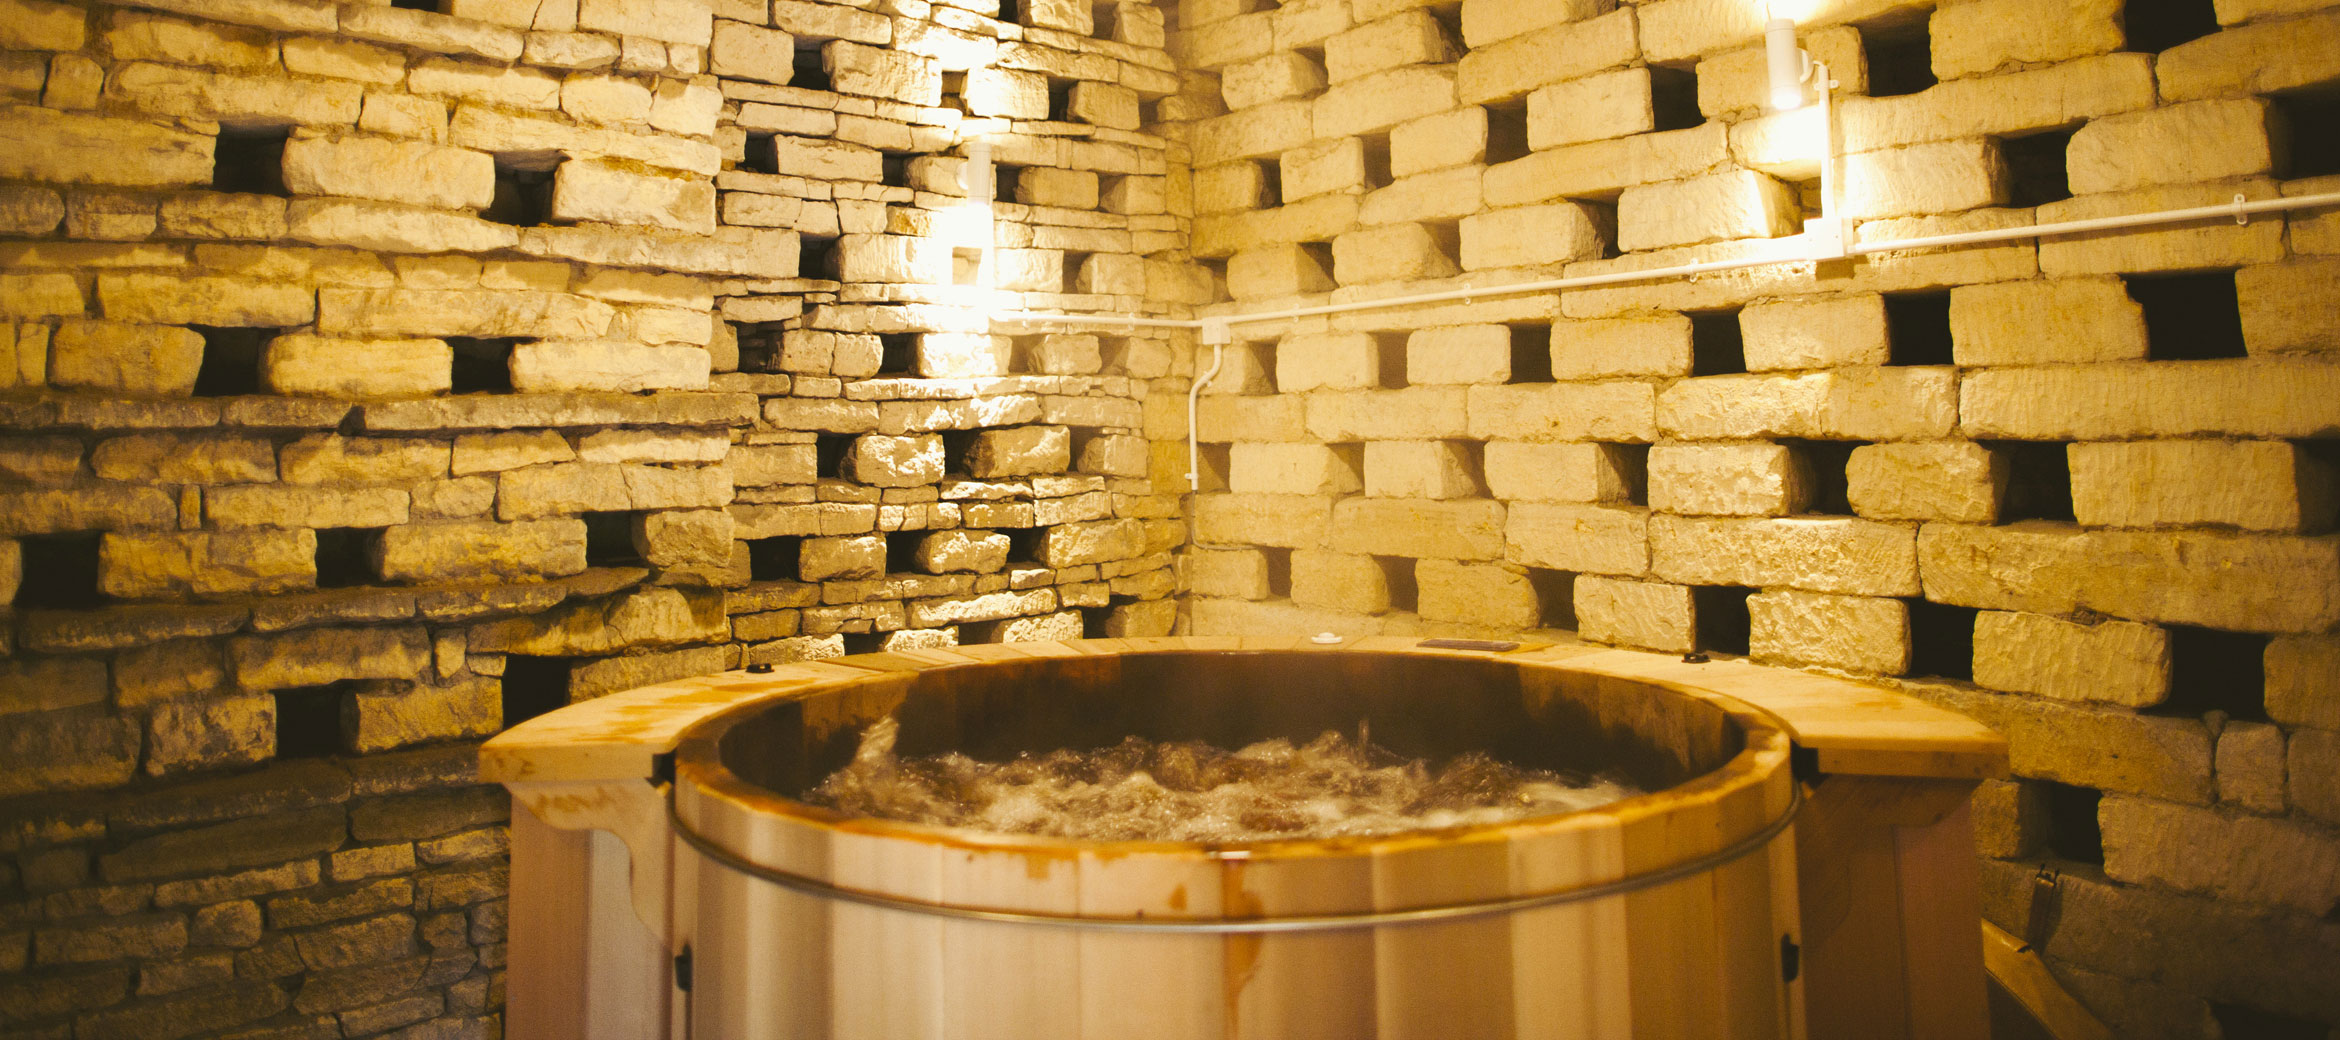 Temple-Guiting-Manor-Hot-Tub